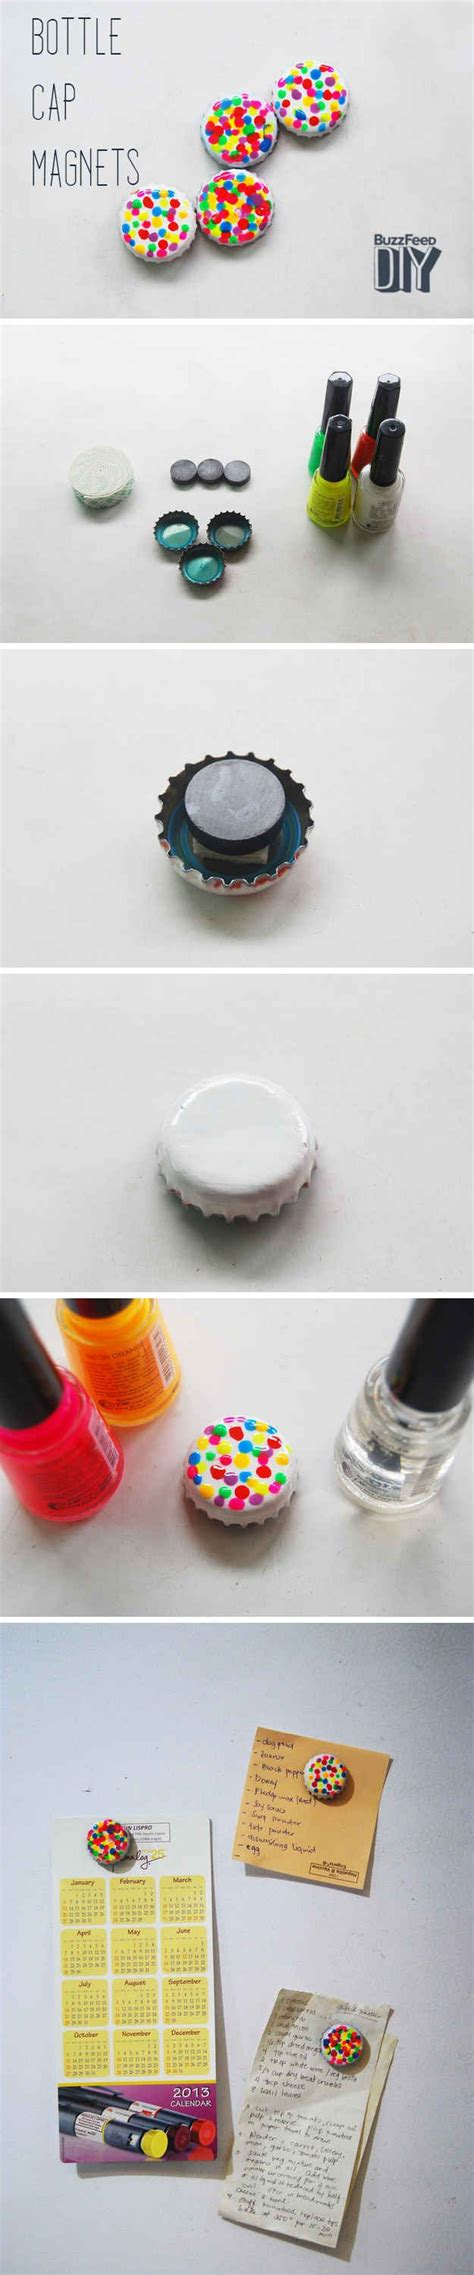 diy bottle cap magnets how to use nail in completely ways